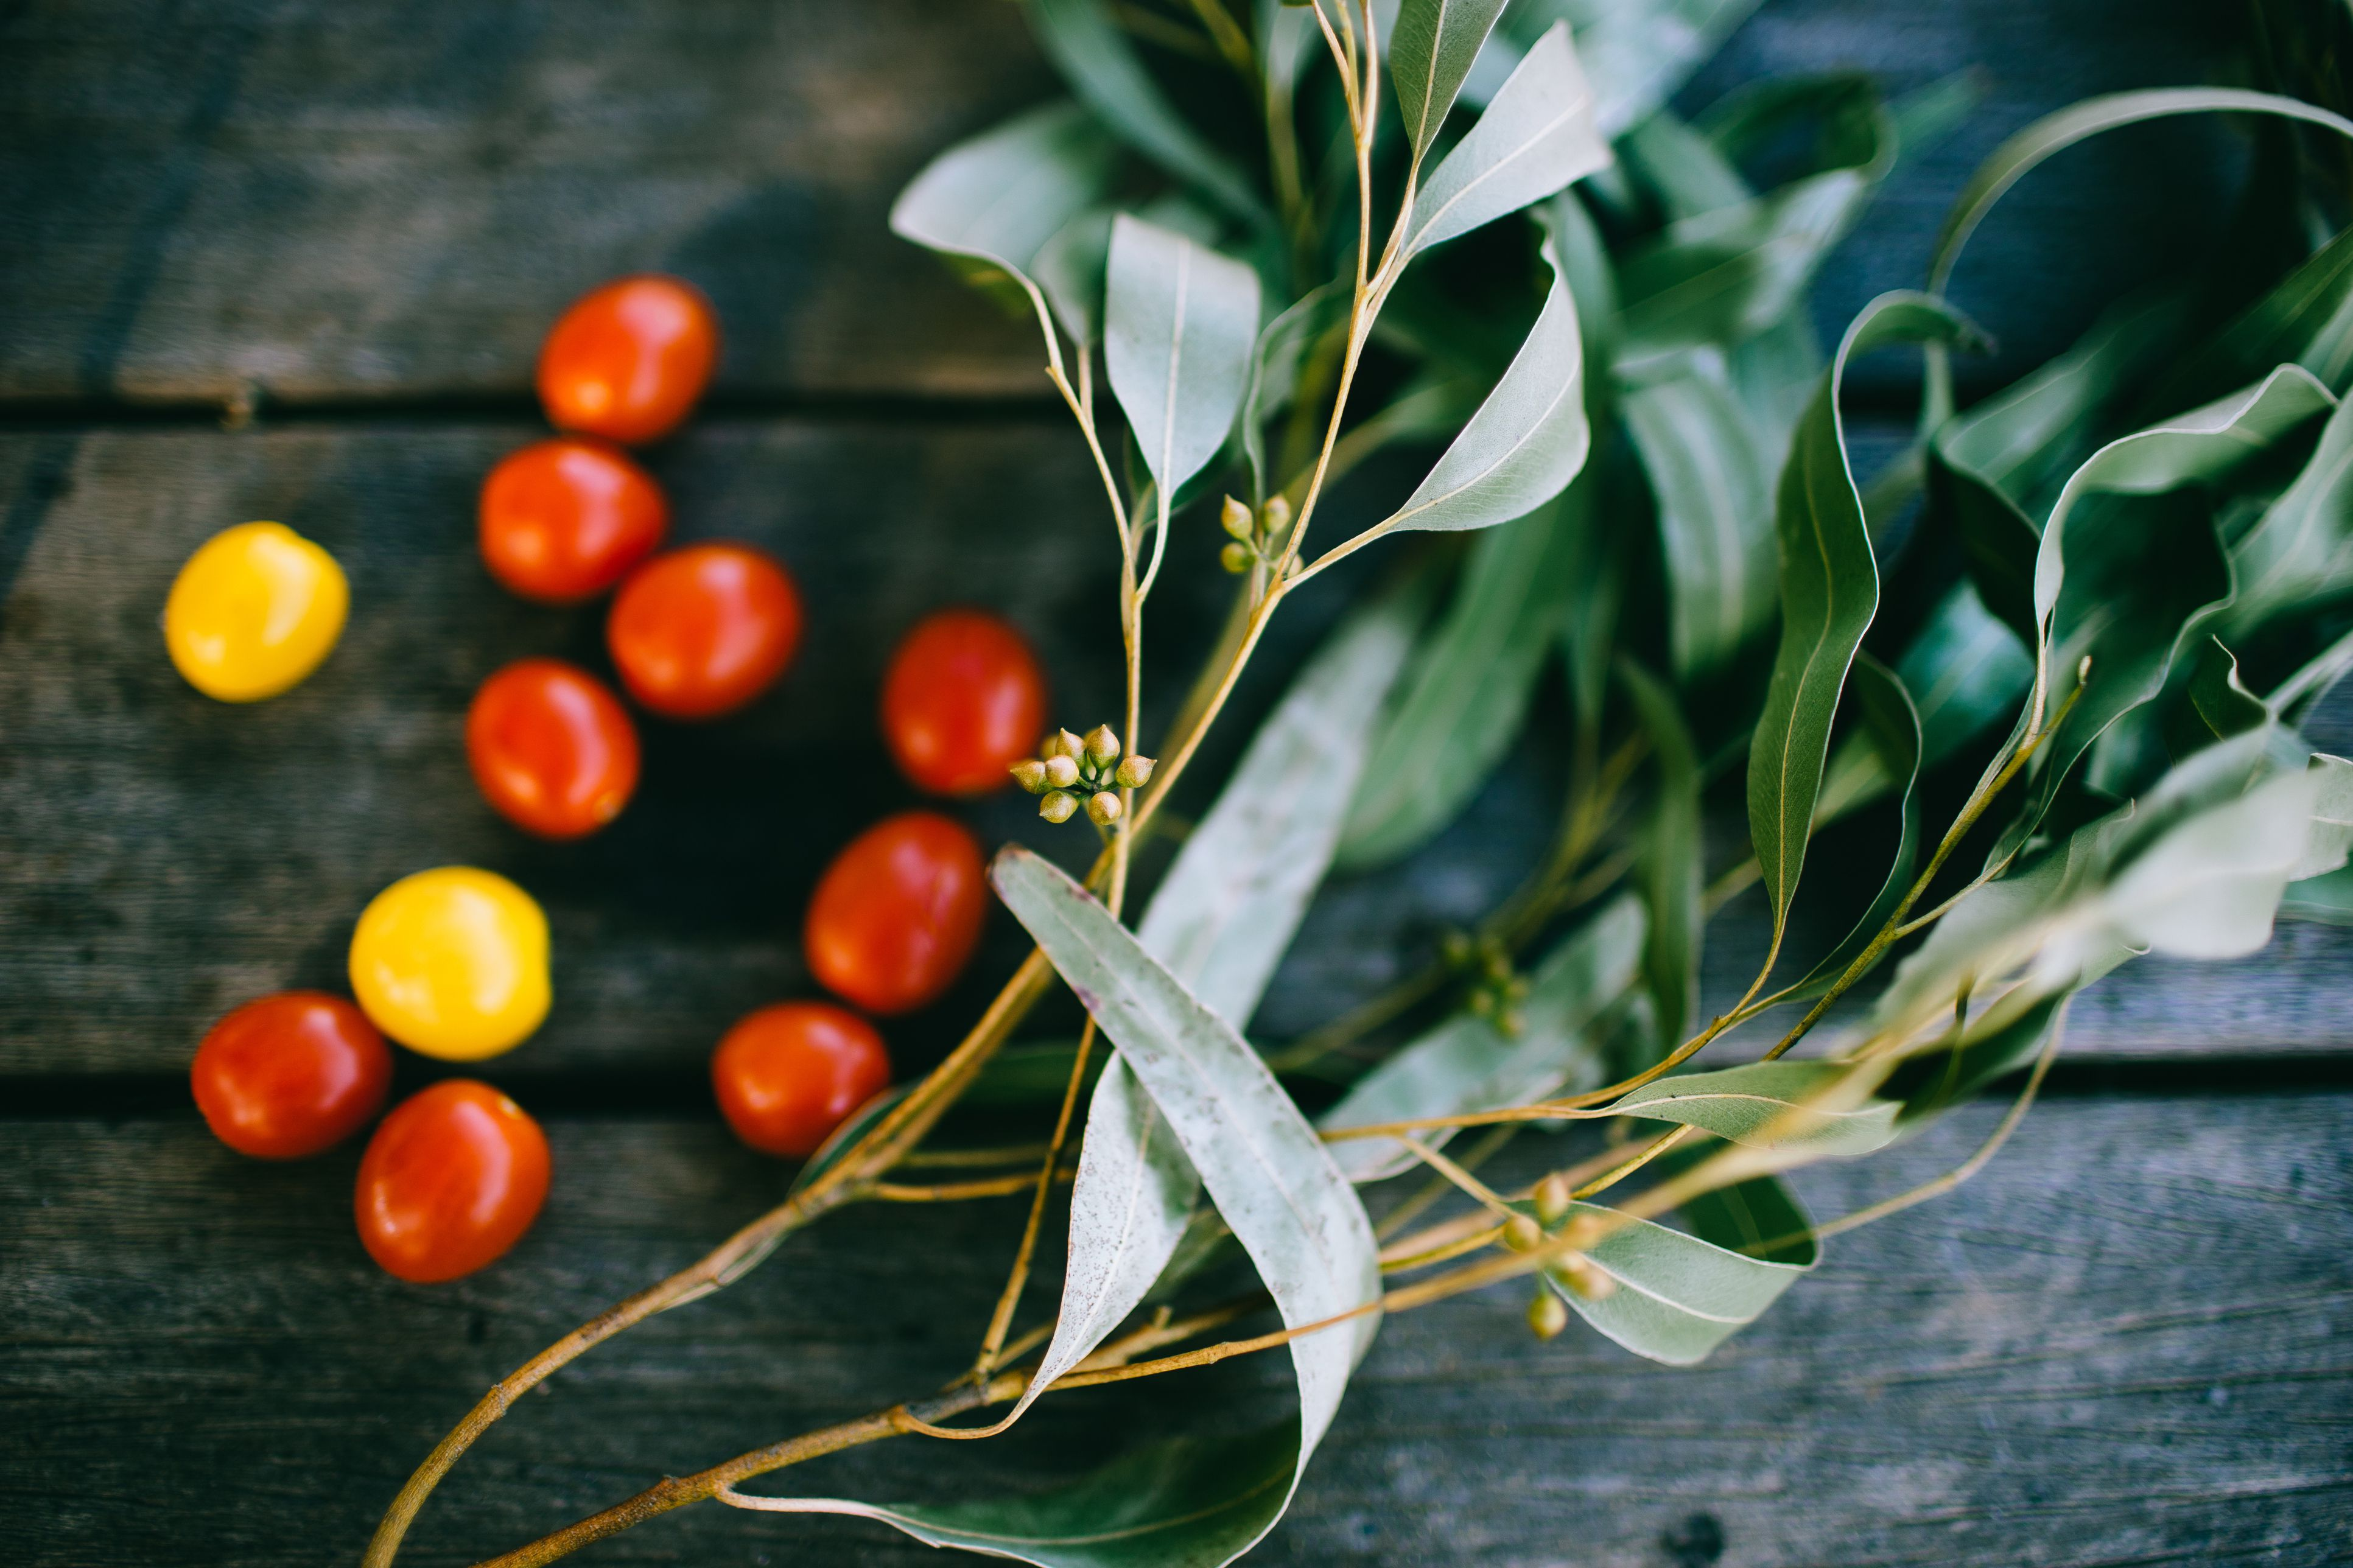 Eucalyptus leaves and cherry tomatoes on wooden table